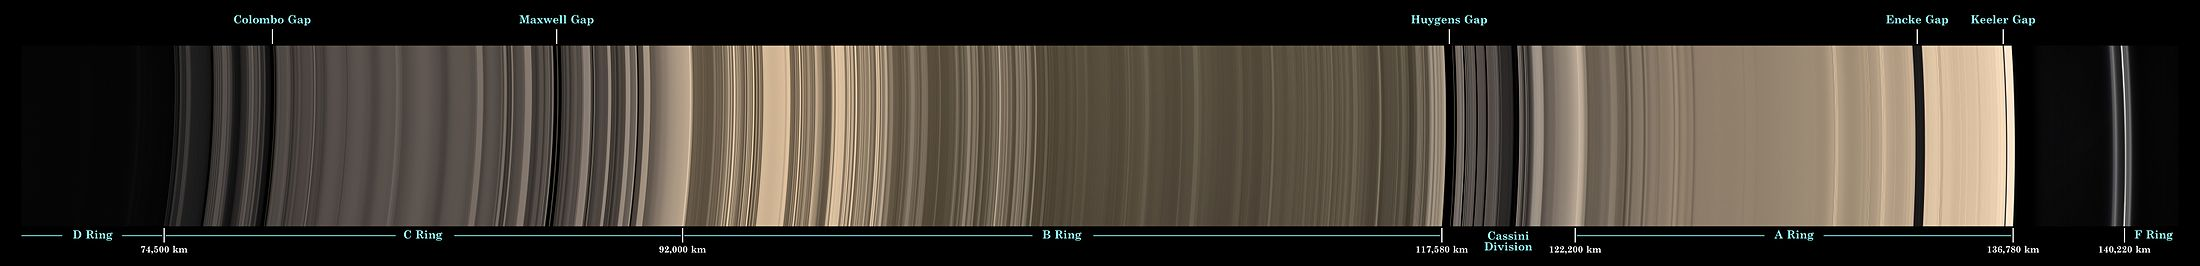 2200px-Saturn's_rings_dark_side_mosaic